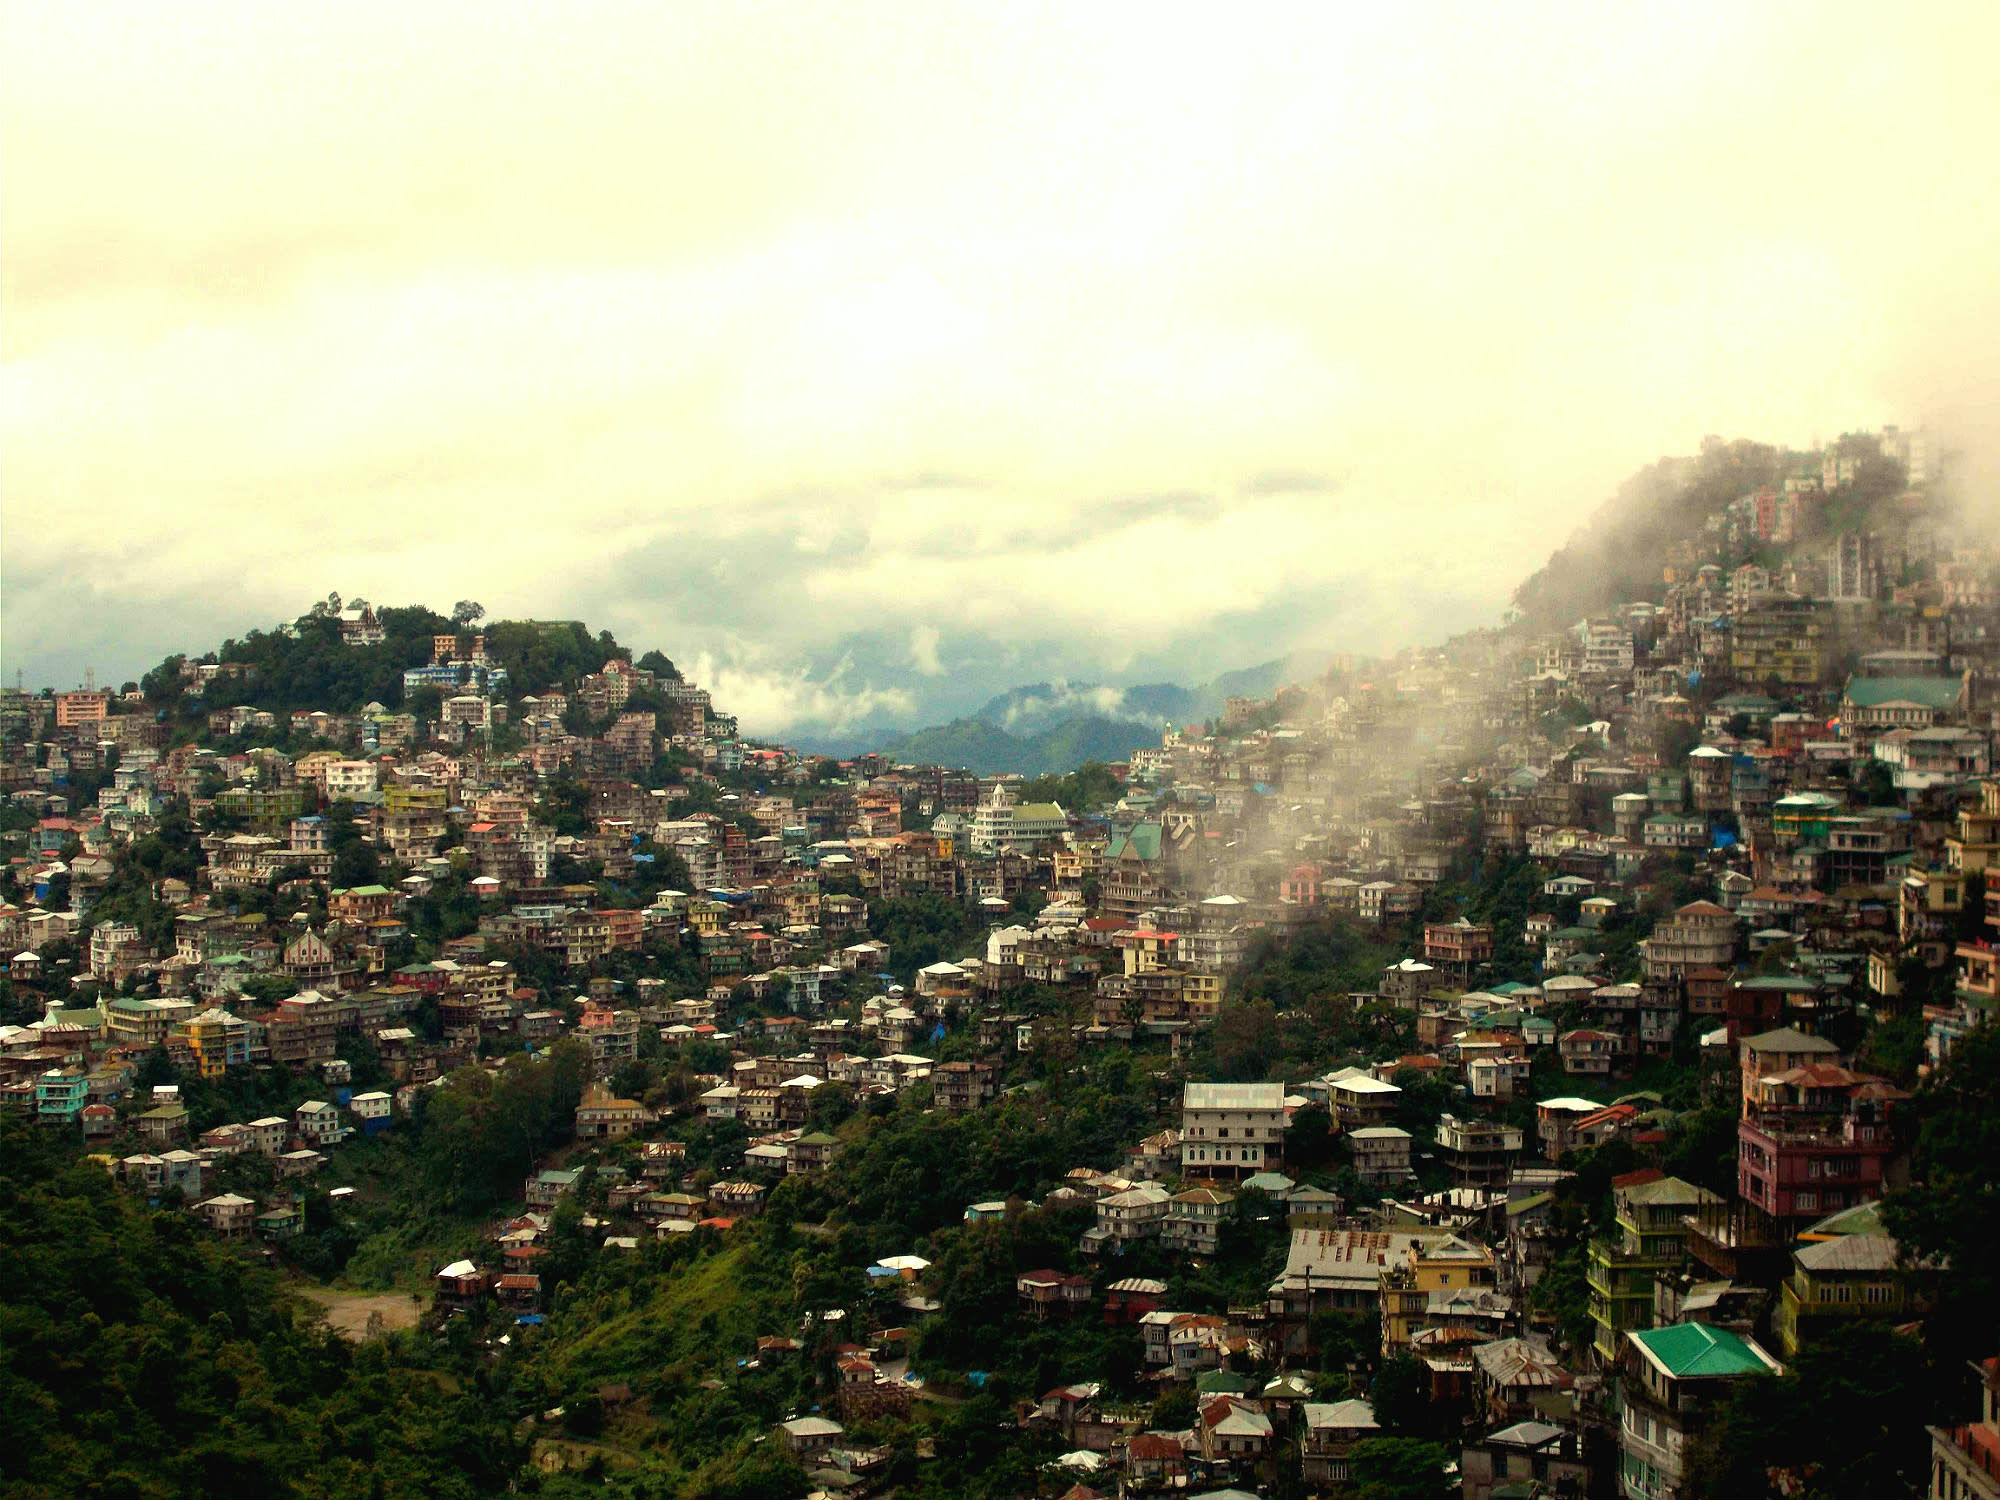 A bowl of wonders called Aizawl